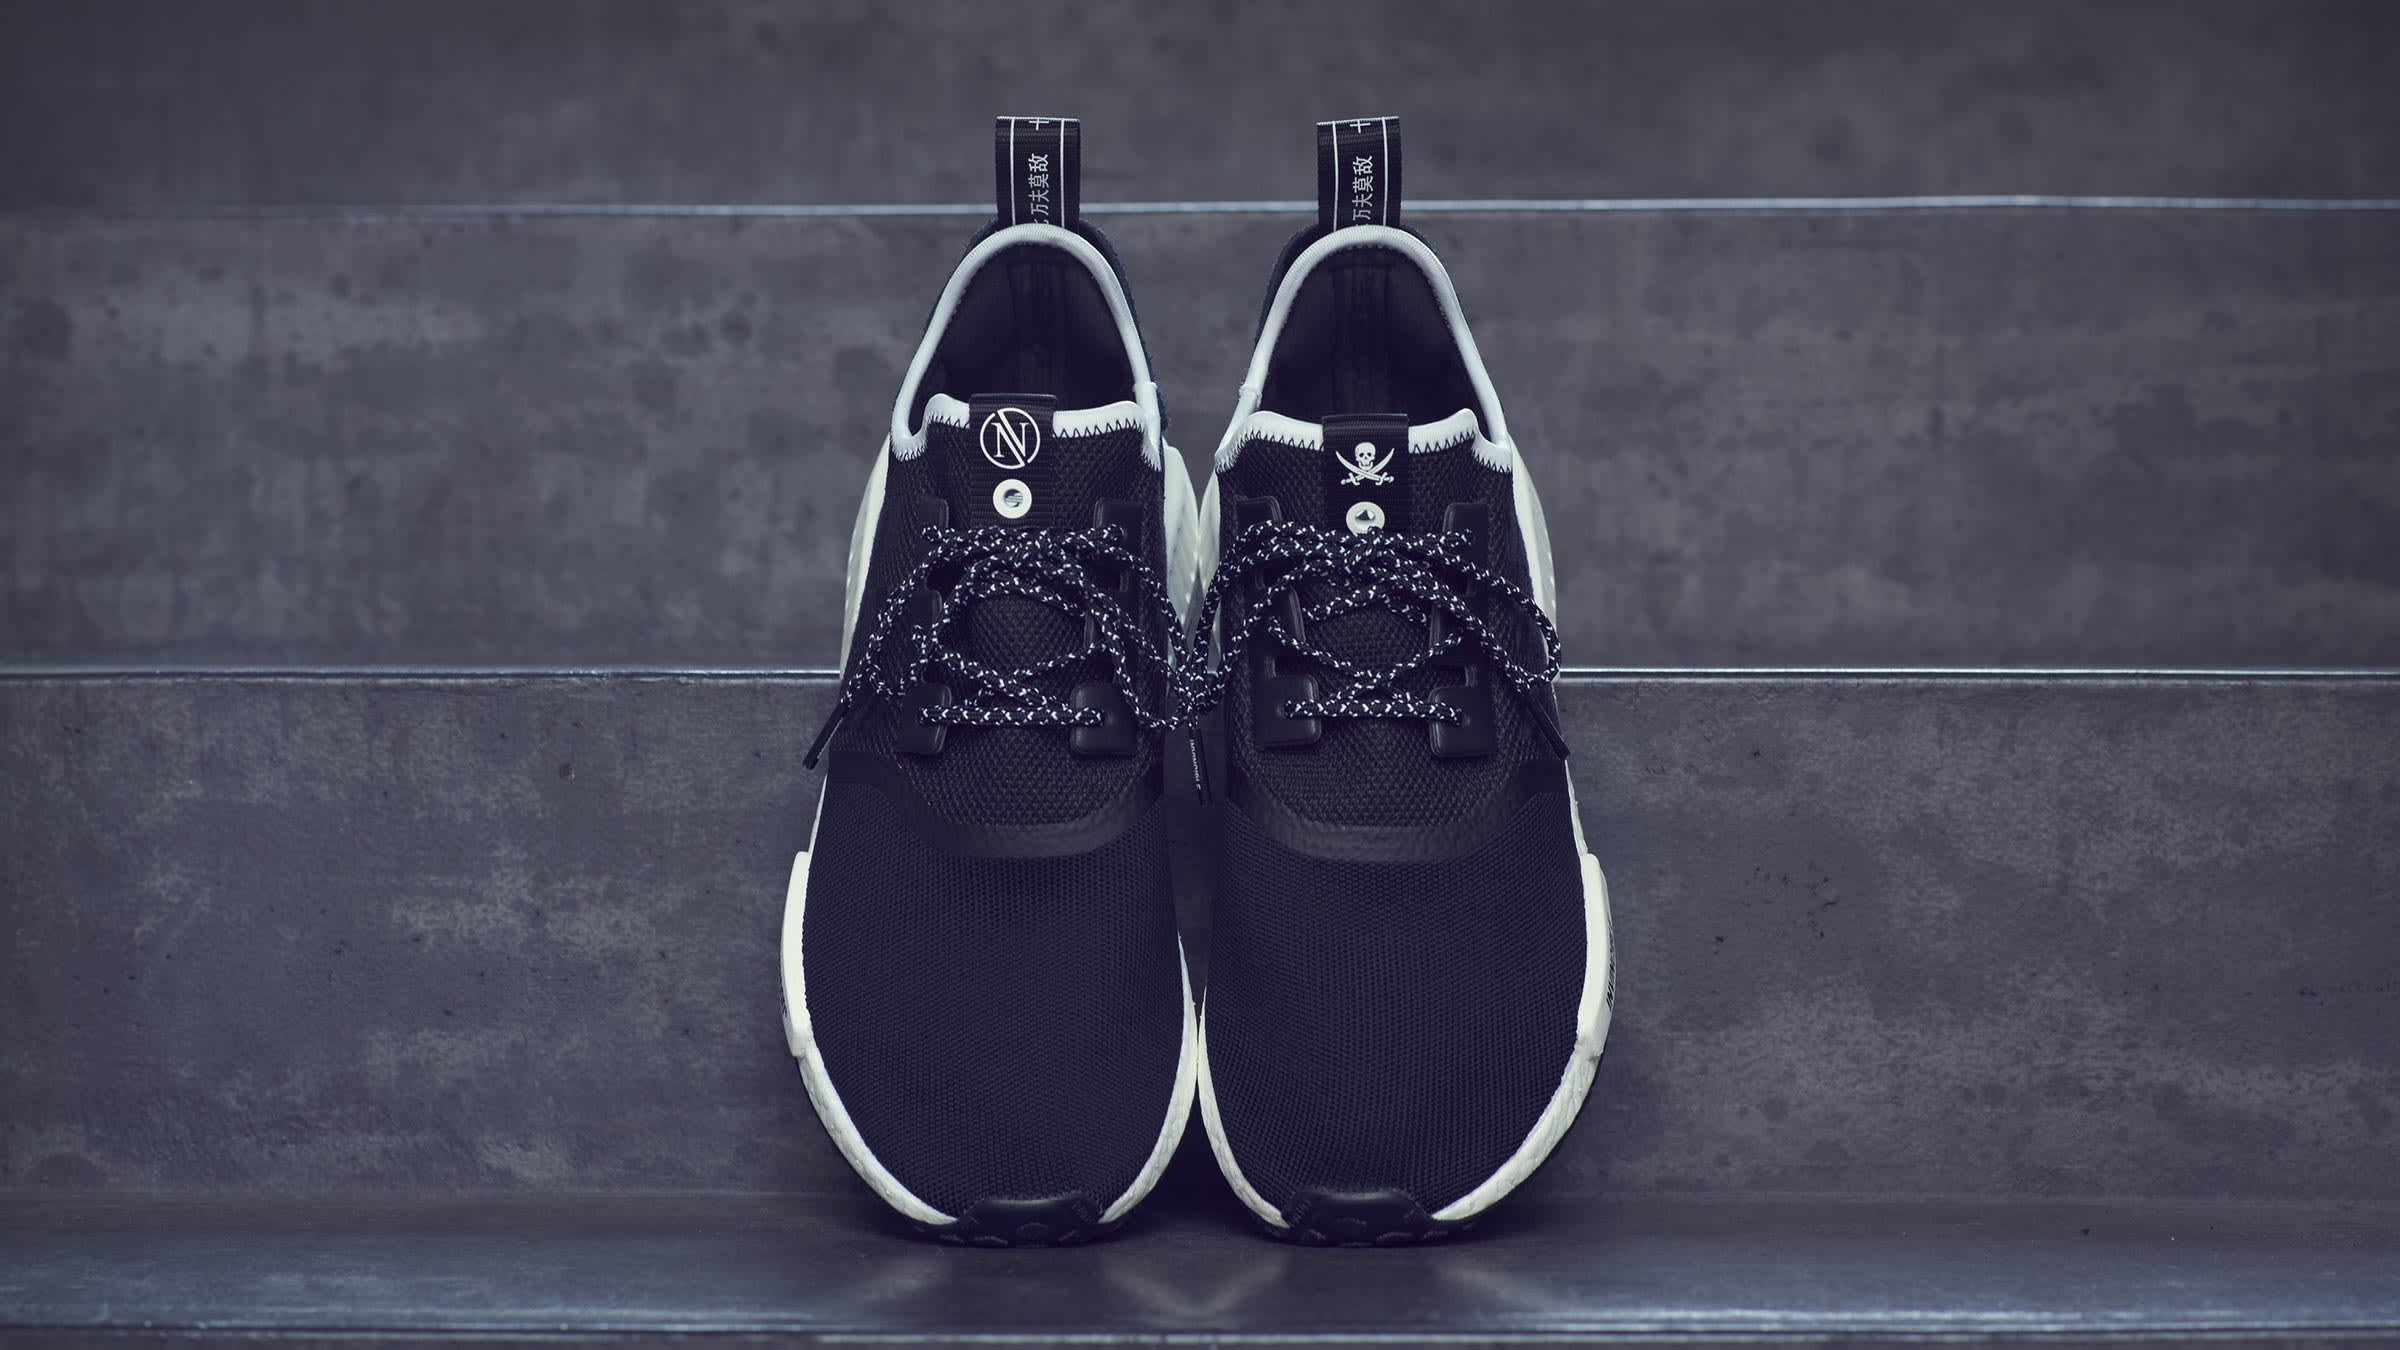 96fd6f50d0ac9 Adidas Consortium x Invincible x Neighborhood NMD R1. Black£169. Taking  cues from Japanese Sukajan jackets